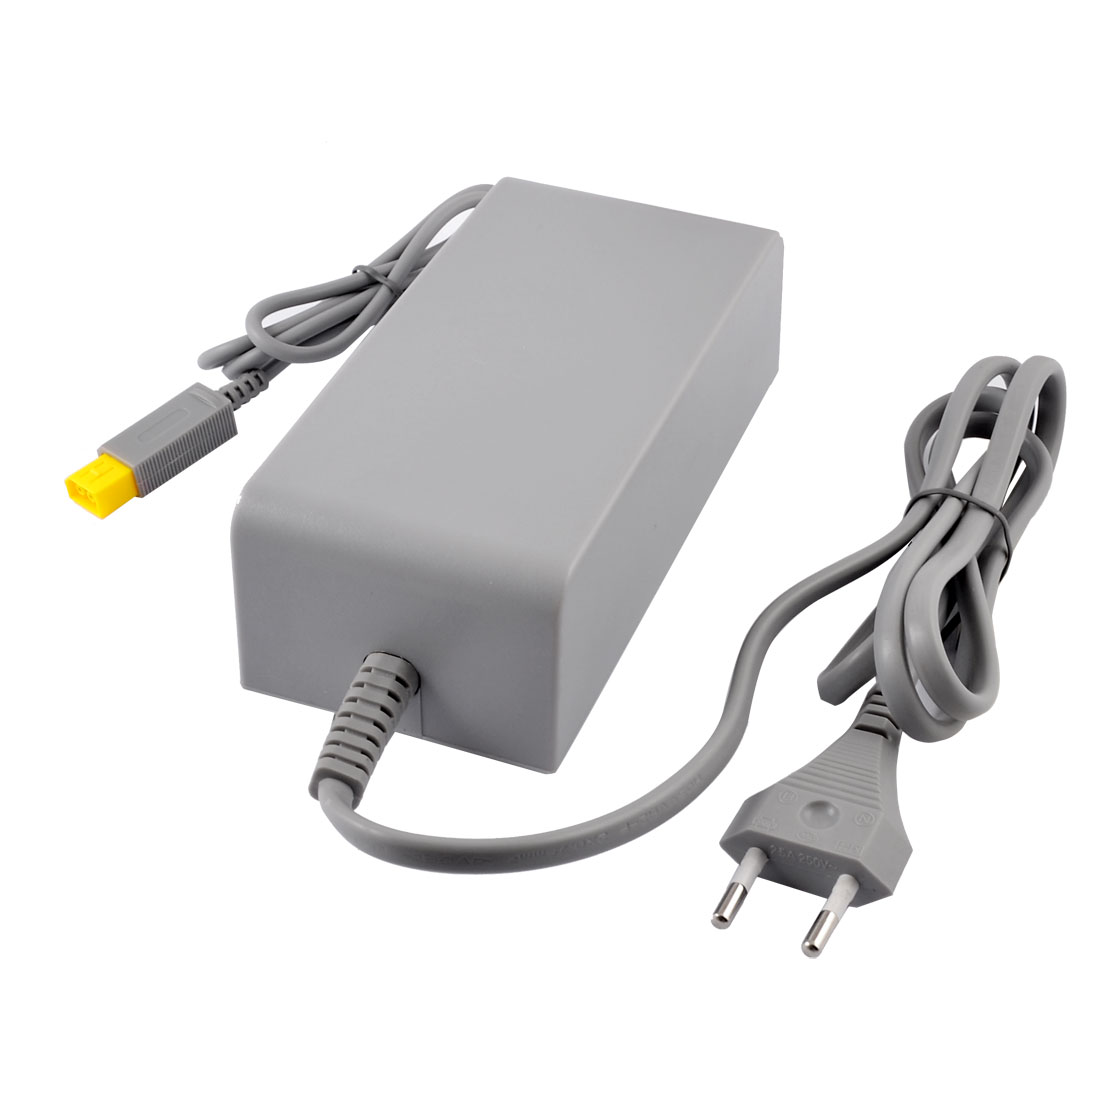 Gray Plastic Housing EU Plug AC Power Adapter for Nintendo Wii U Gamepad